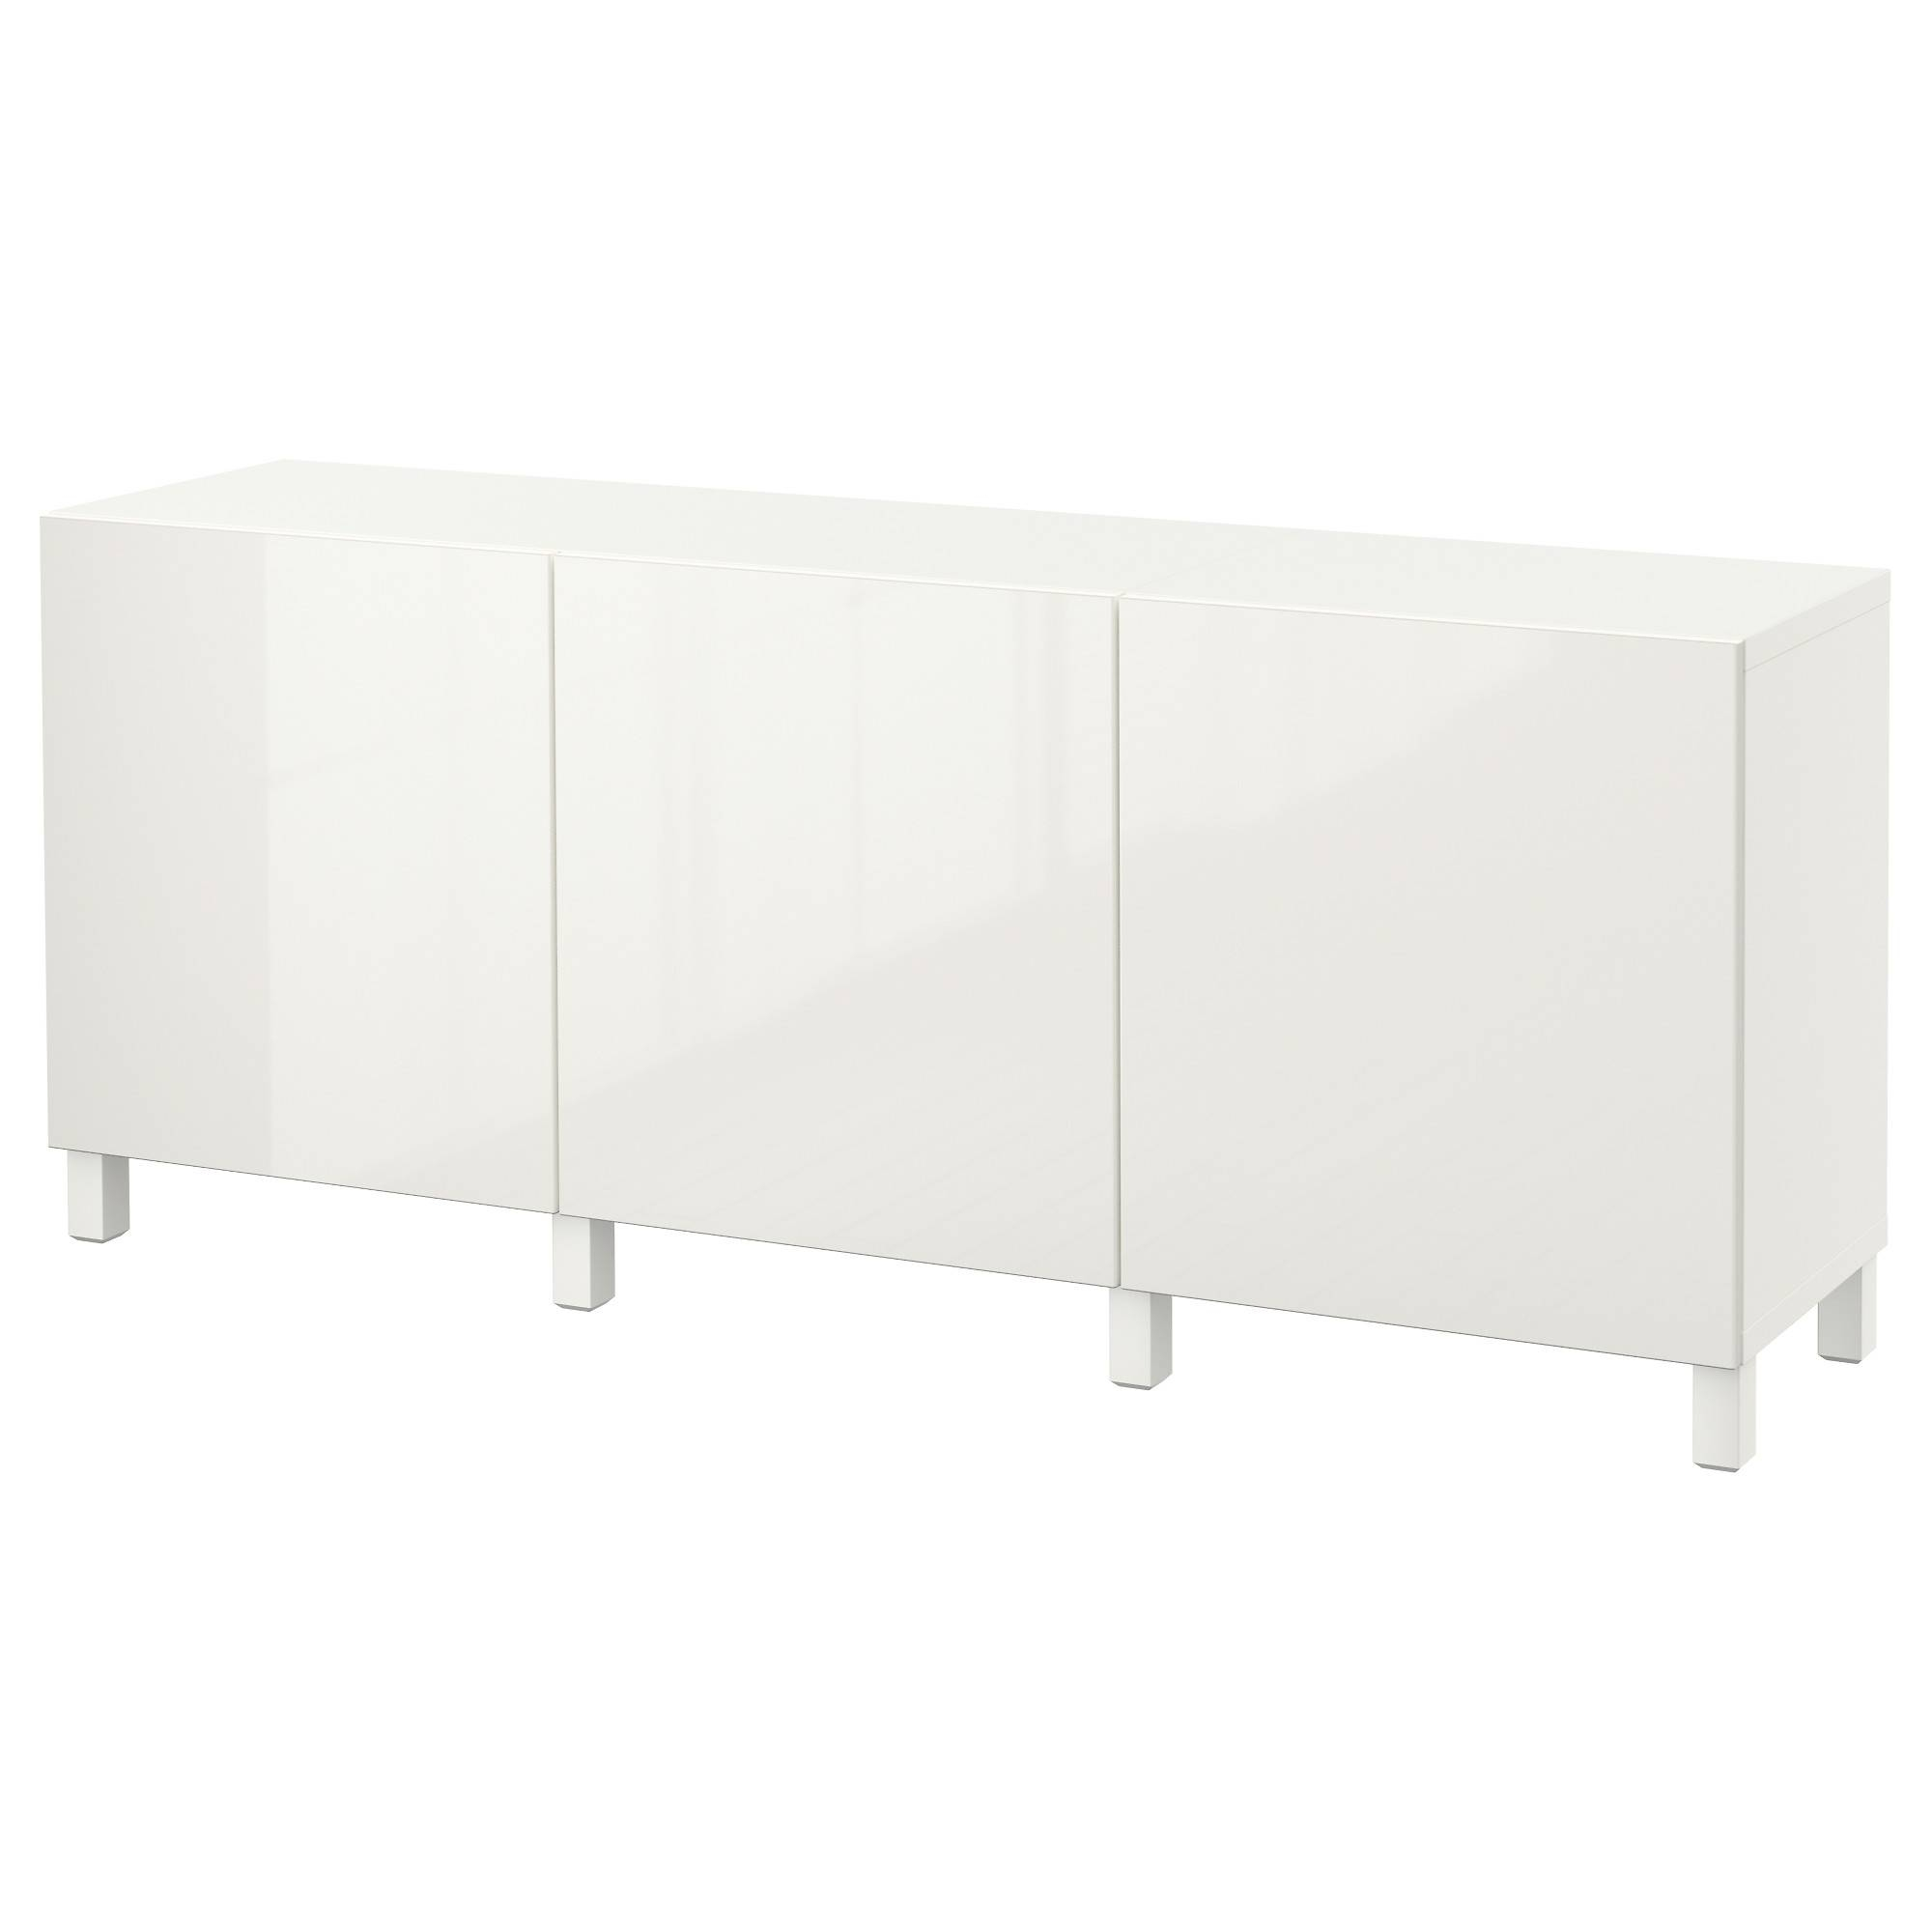 Buffet ikea besta simple dining room sideboard with glass for White gloss sideboards at ikea